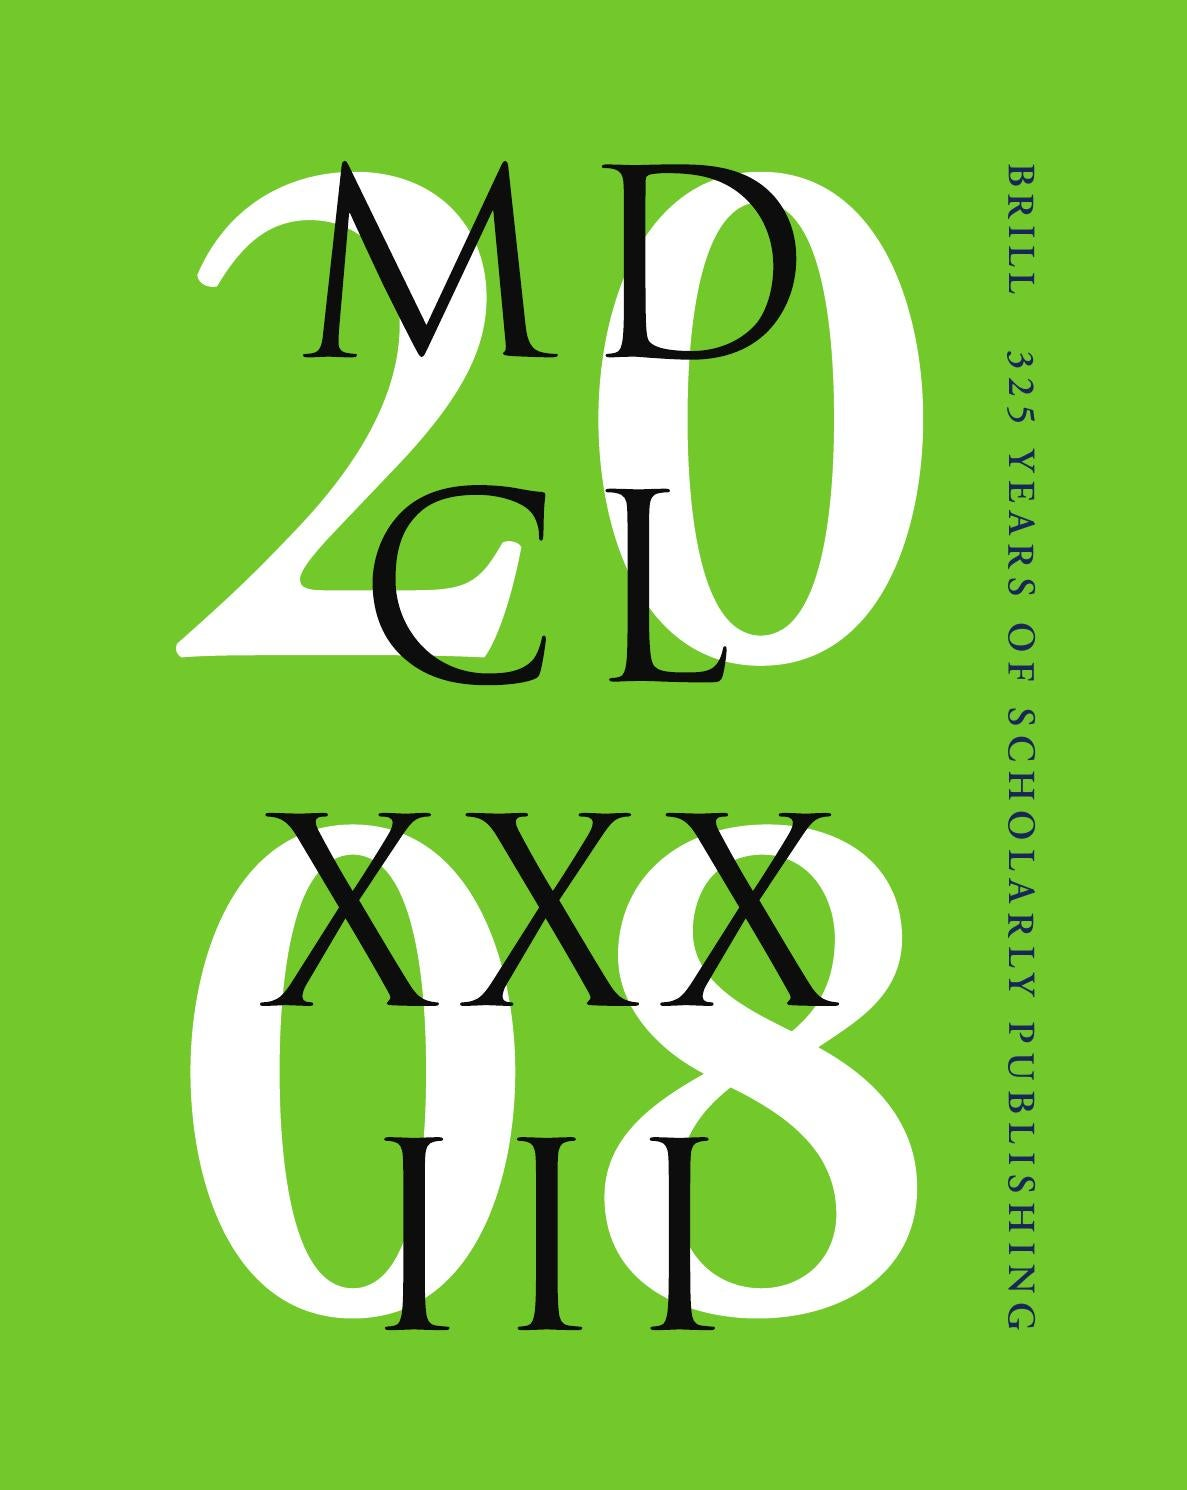 Brill 325 Years Of Scholarly Publishing By Issuu Squishy Circuits Teach Electrical Innovation Opus Magnum